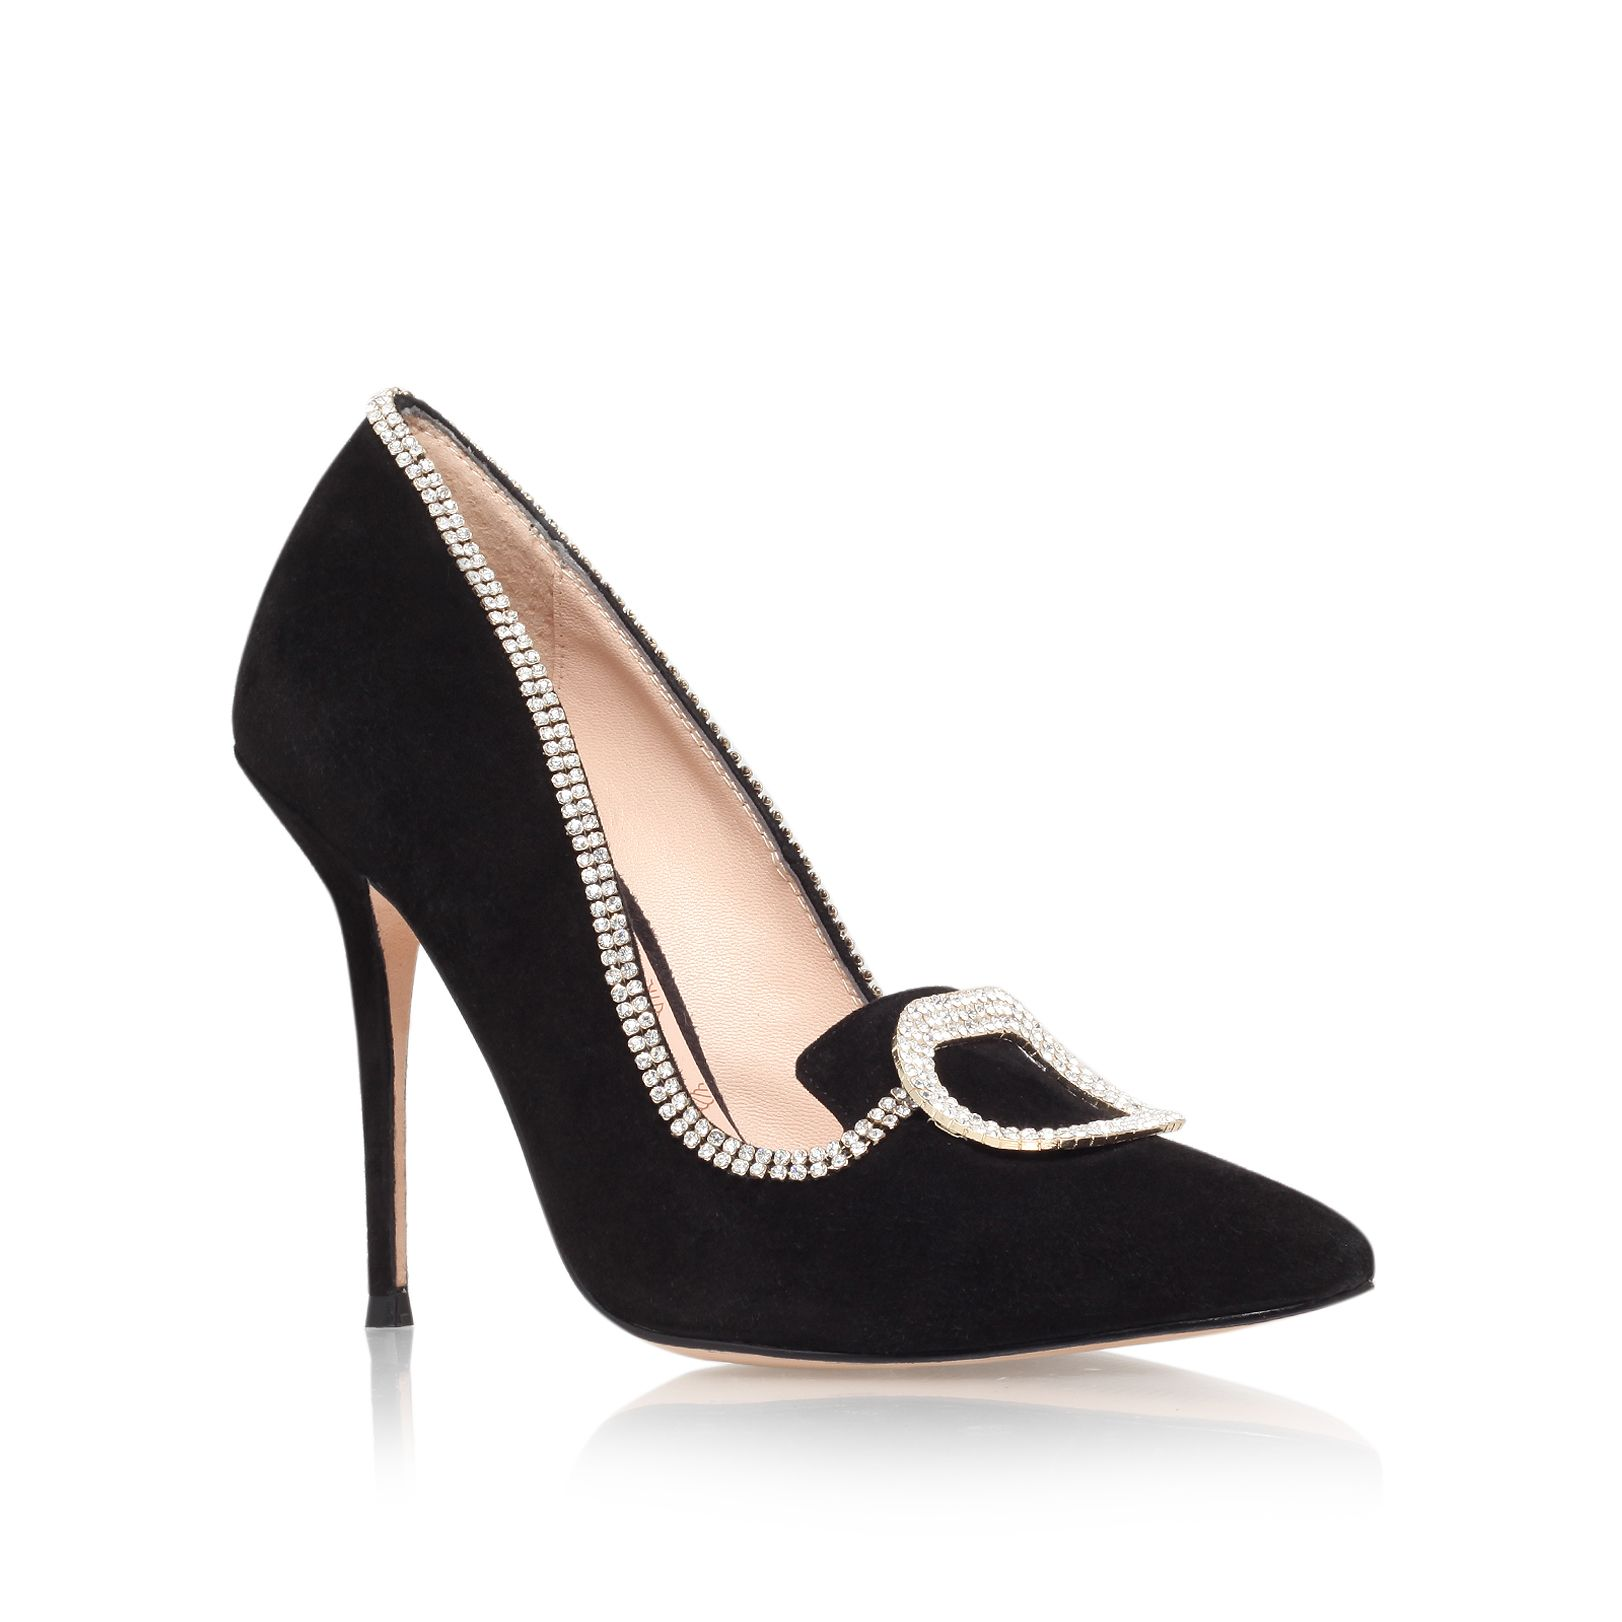 Diane high heel court shoes